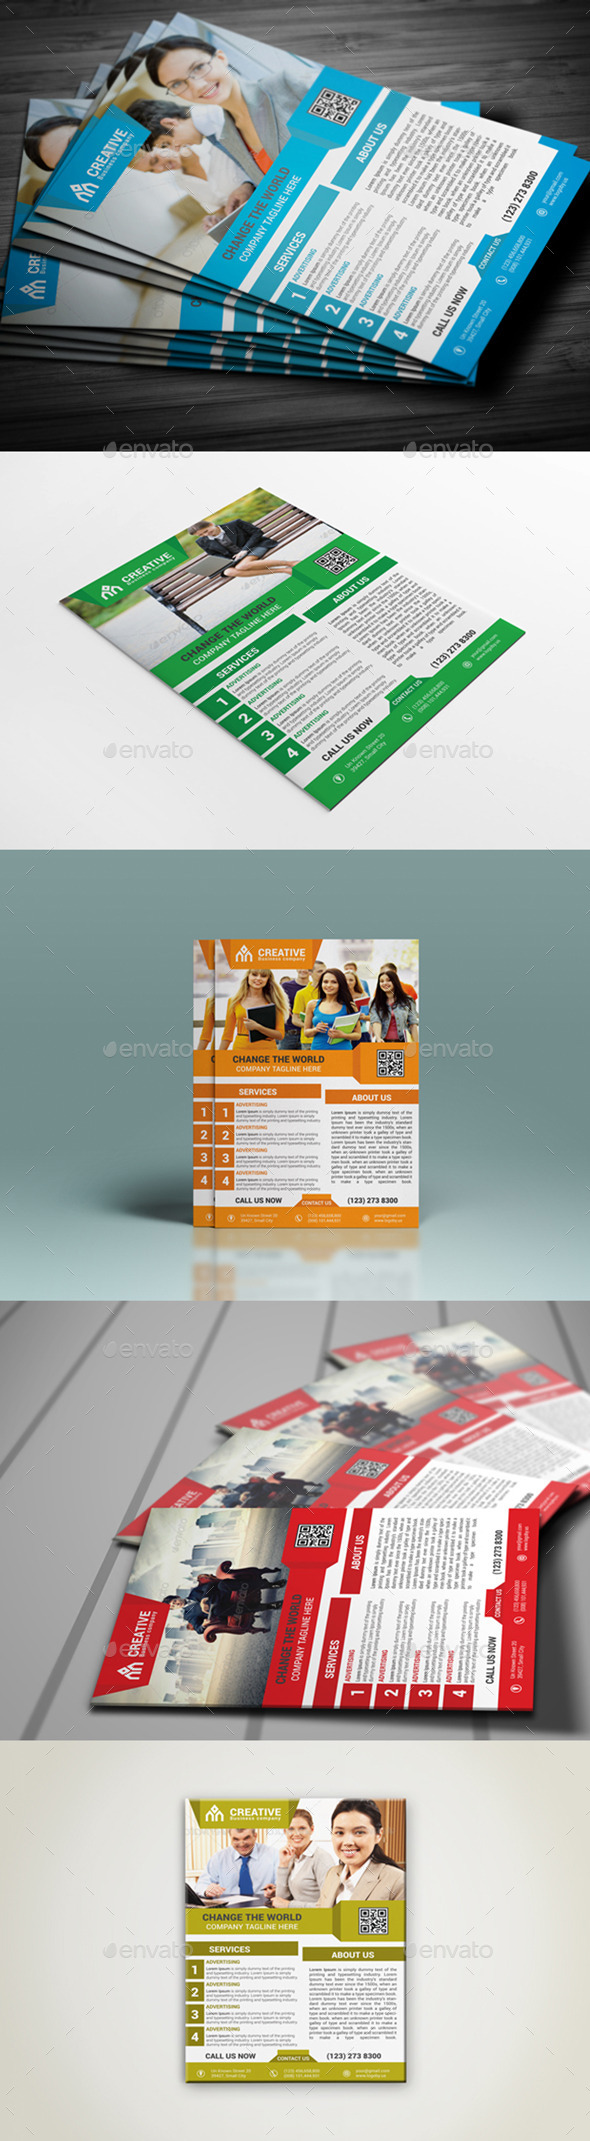 GraphicRiver Creative Corporate Flyer Template 9831304